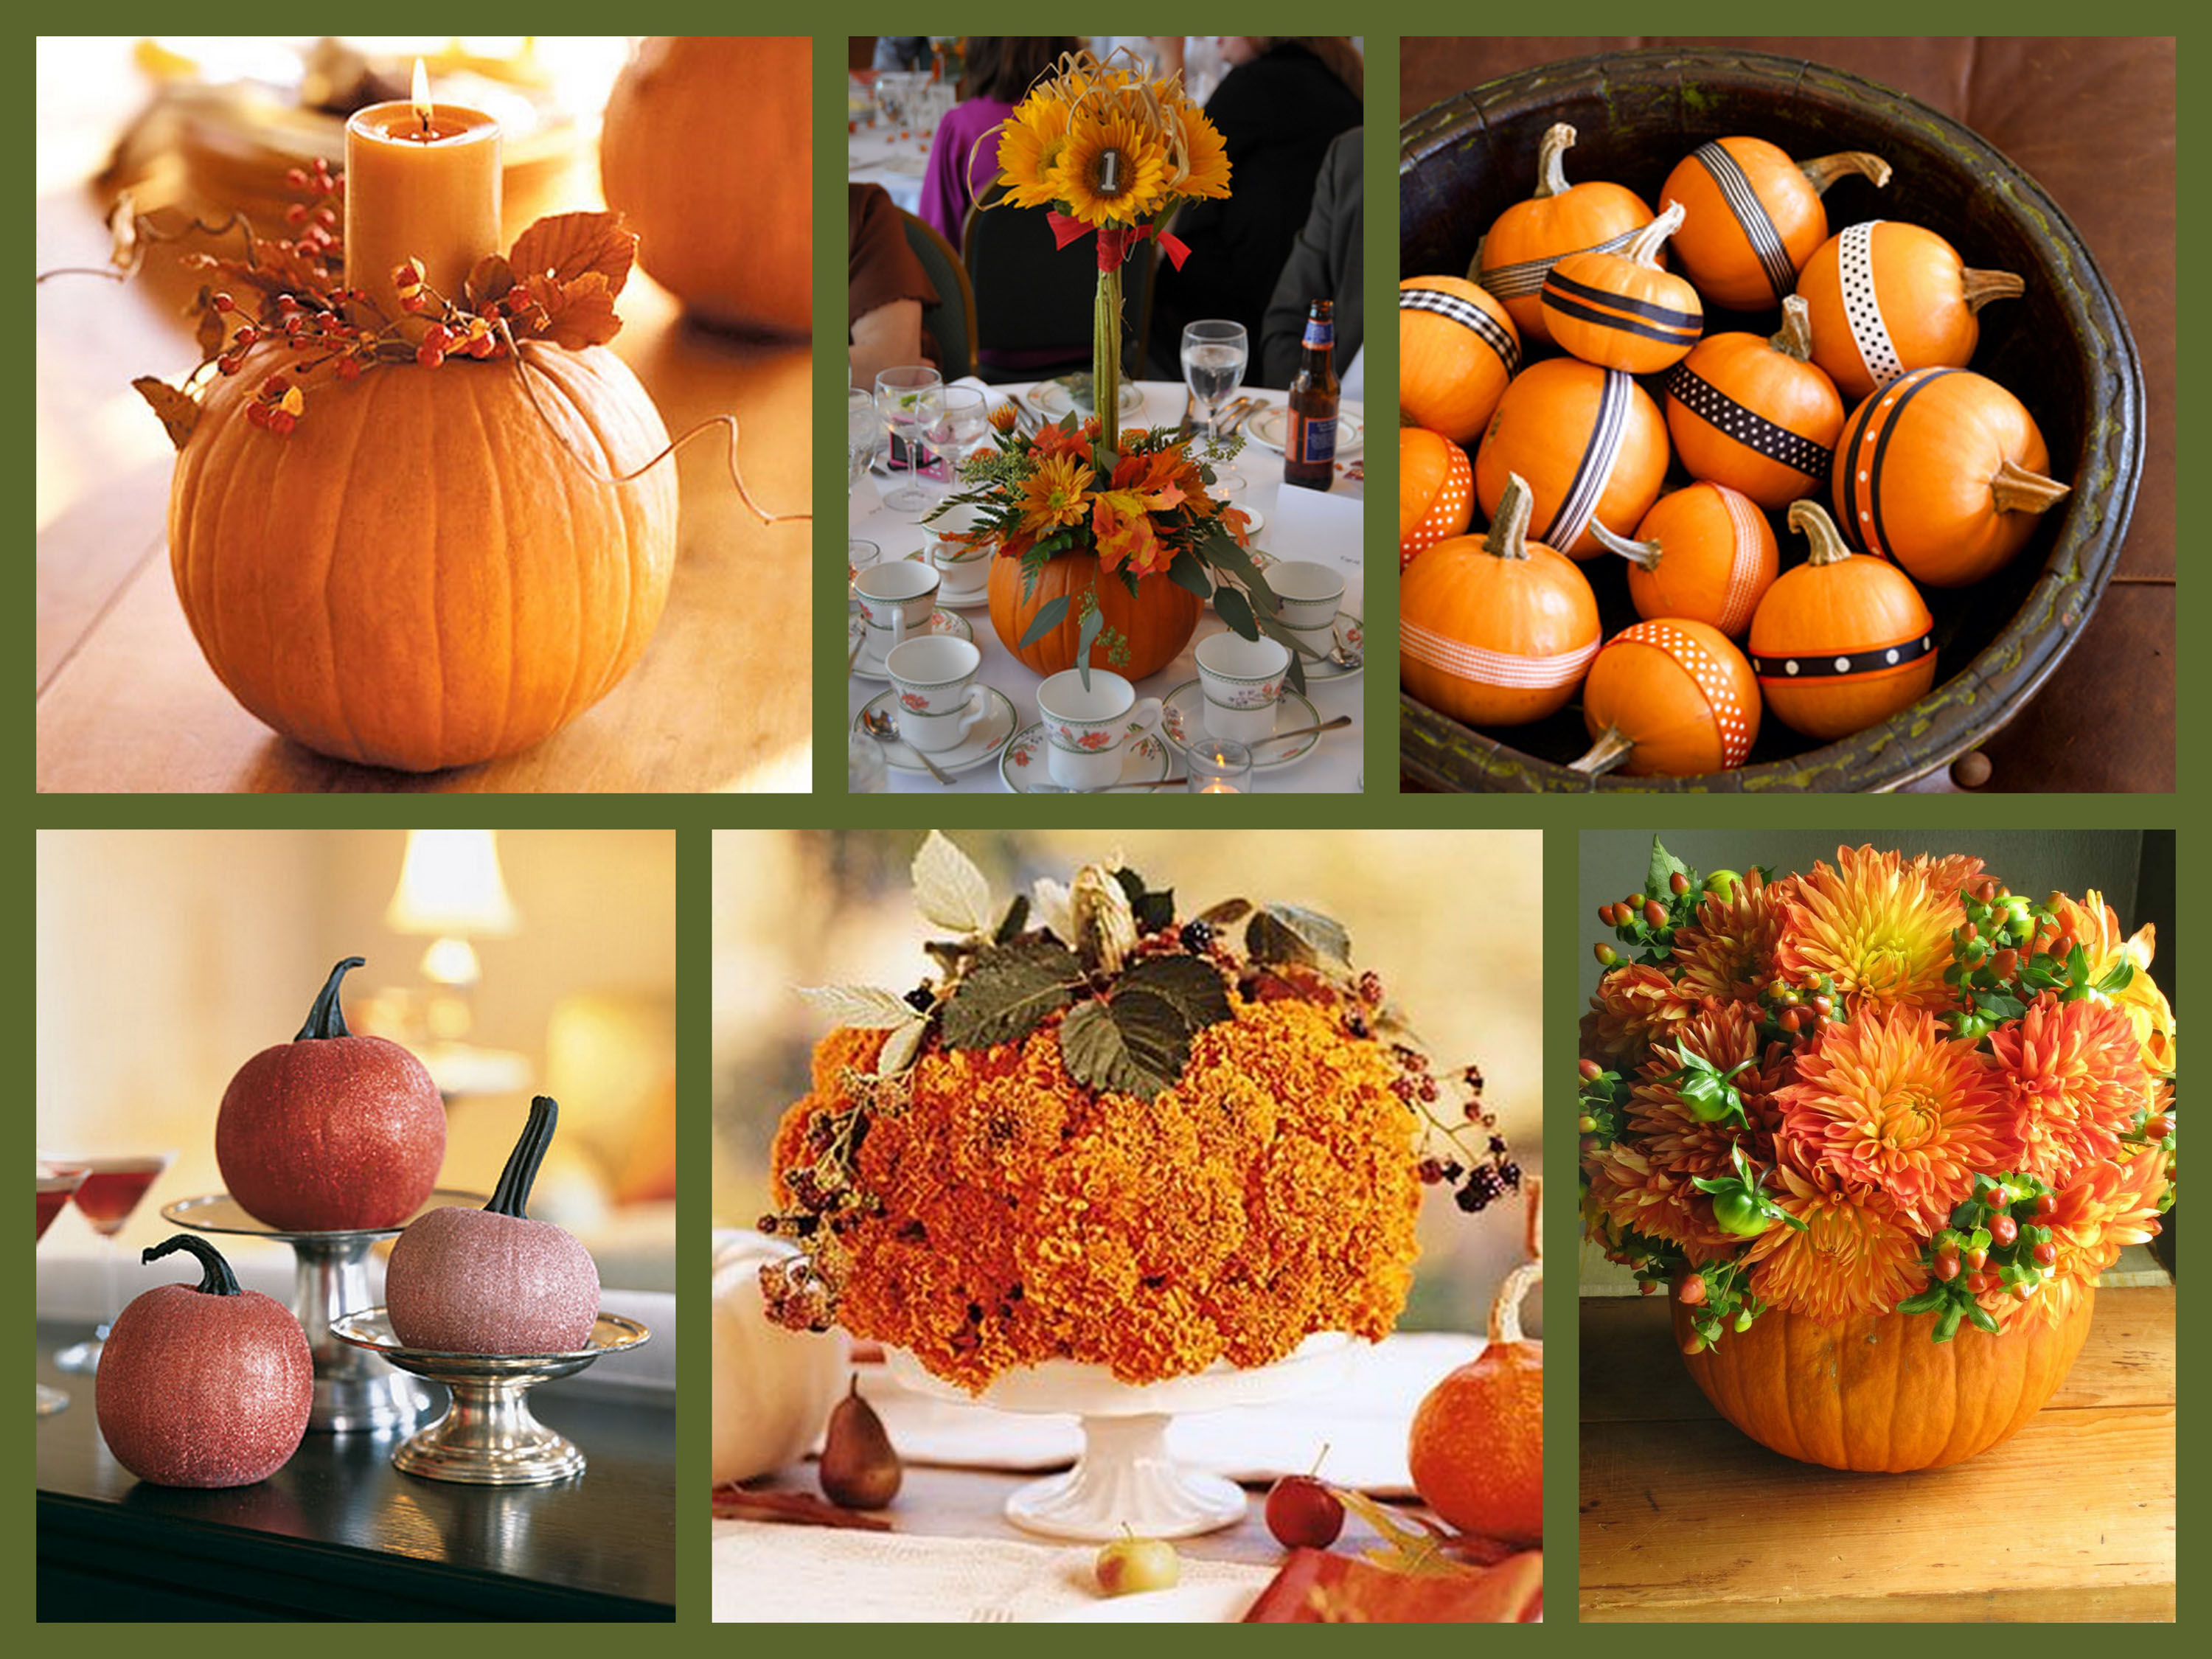 Autumn decorating inspiration pictures photos and images for Fall diy crafts pinterest